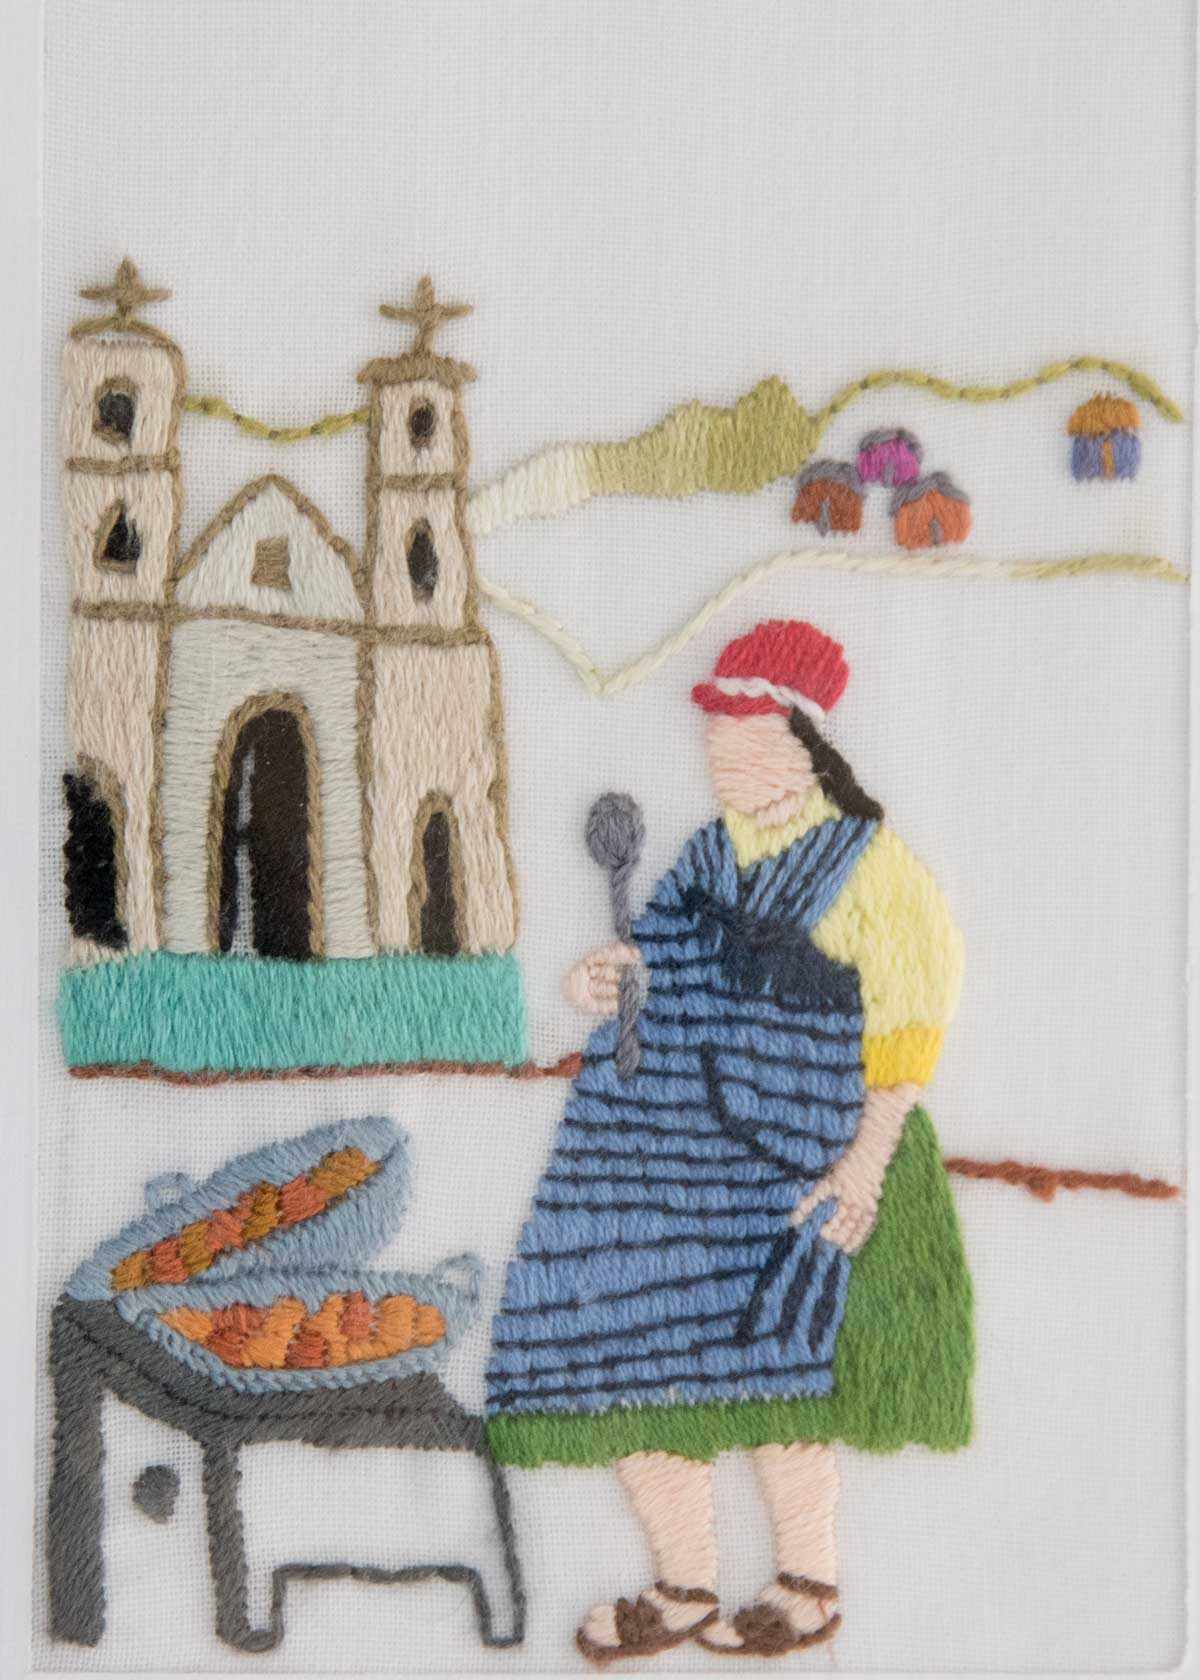 Cuenca Vendor; Exhibit of Cuenca Fiber Artists | ©Angela Drake